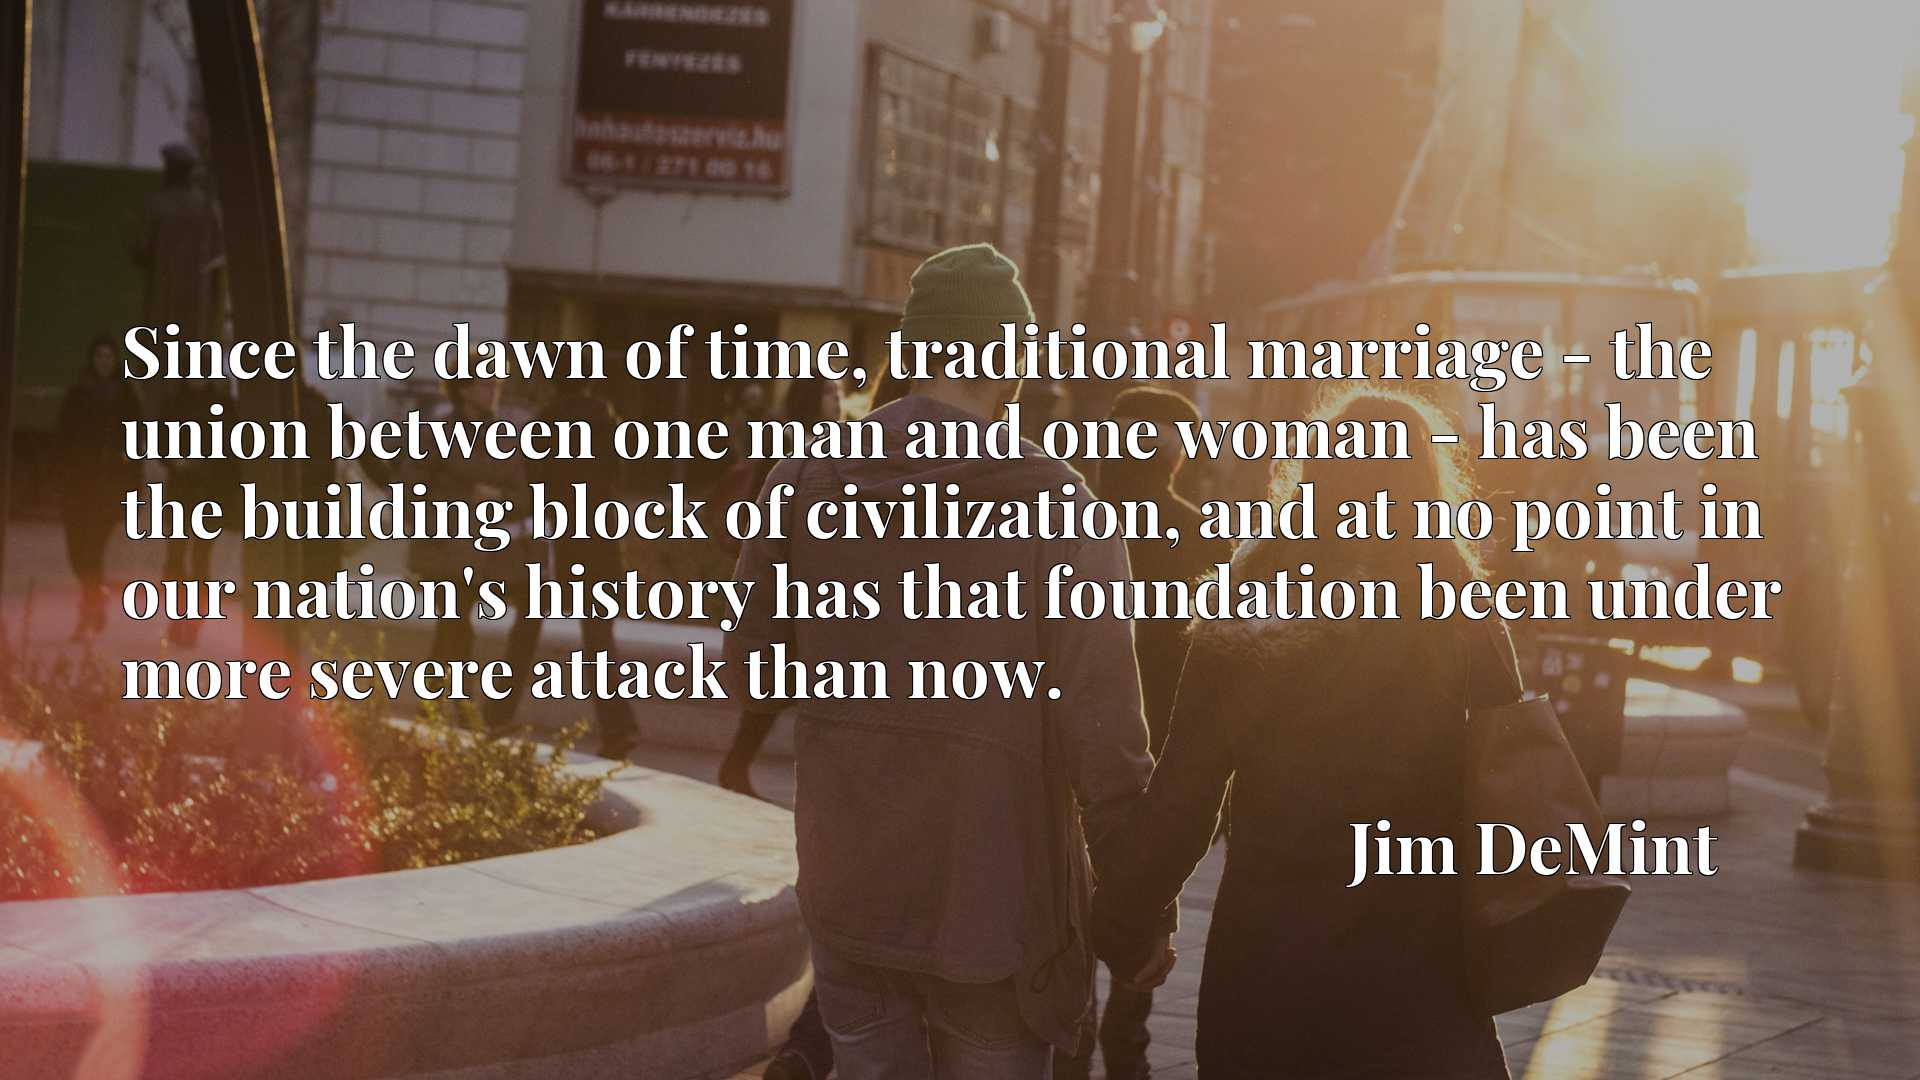 Since the dawn of time, traditional marriage - the union between one man and one woman - has been the building block of civilization, and at no point in our nation's history has that foundation been under more severe attack than now.